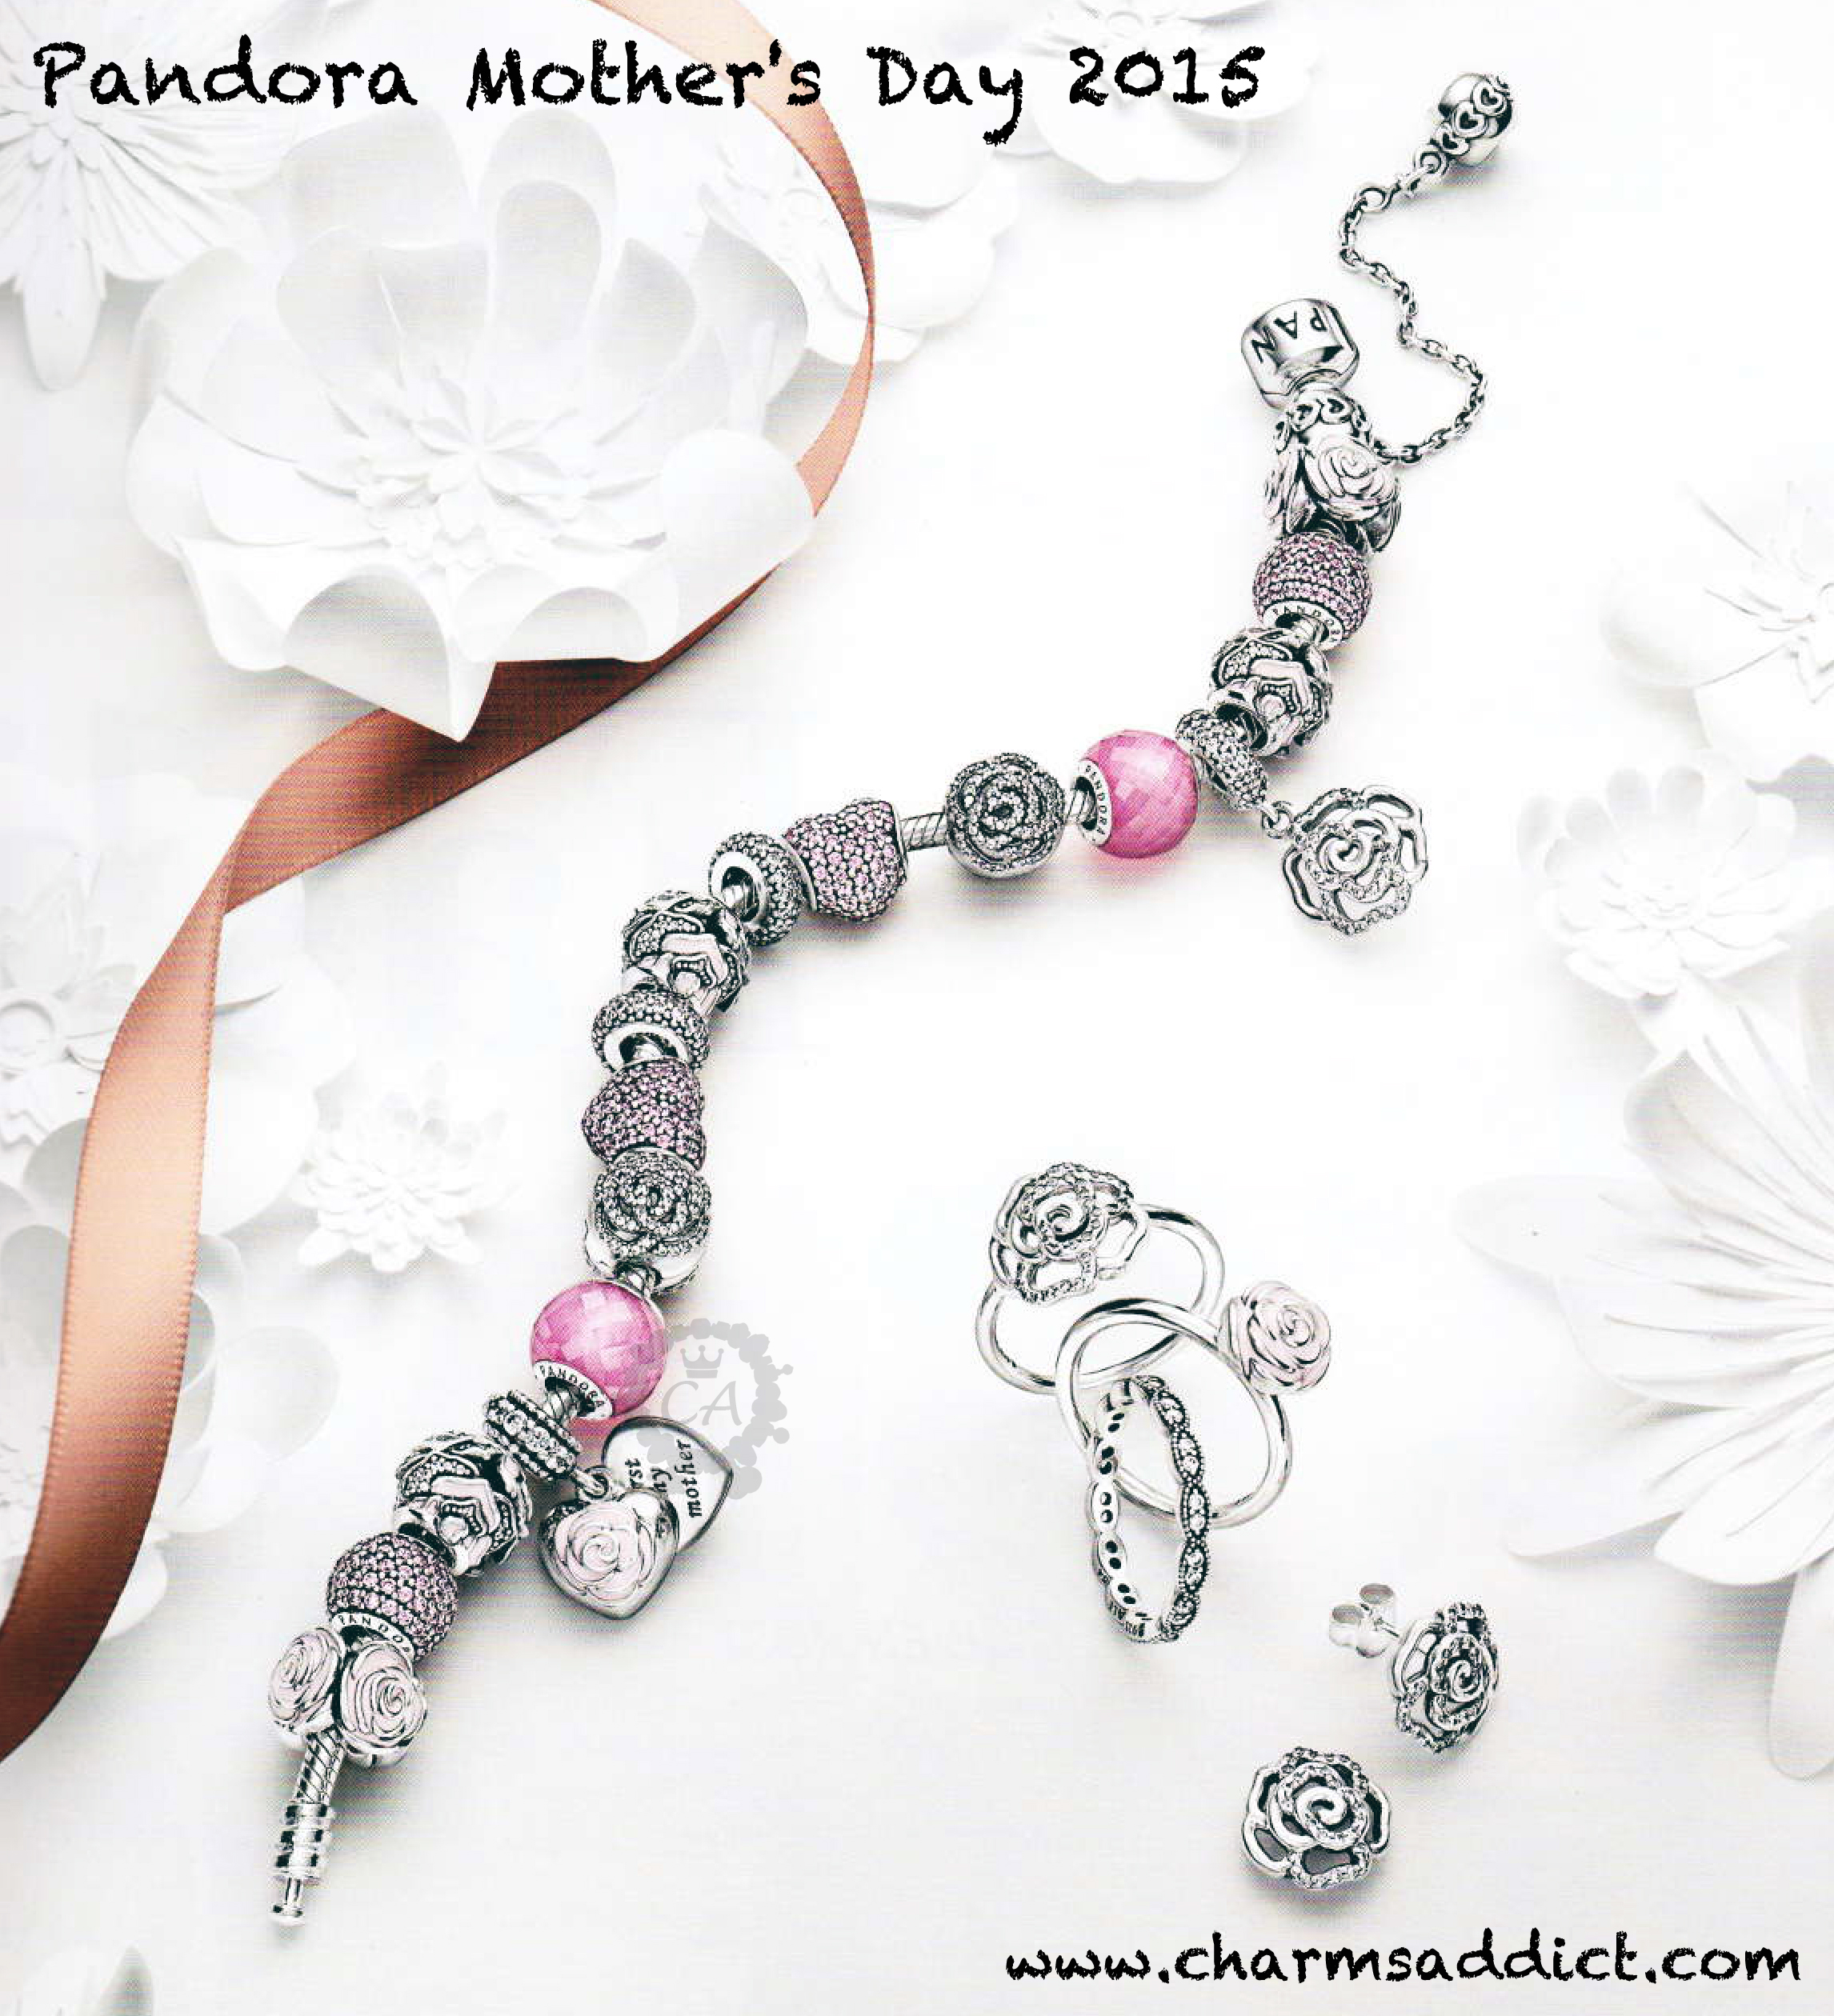 Pandora Mother's Day 2015 Full Preview